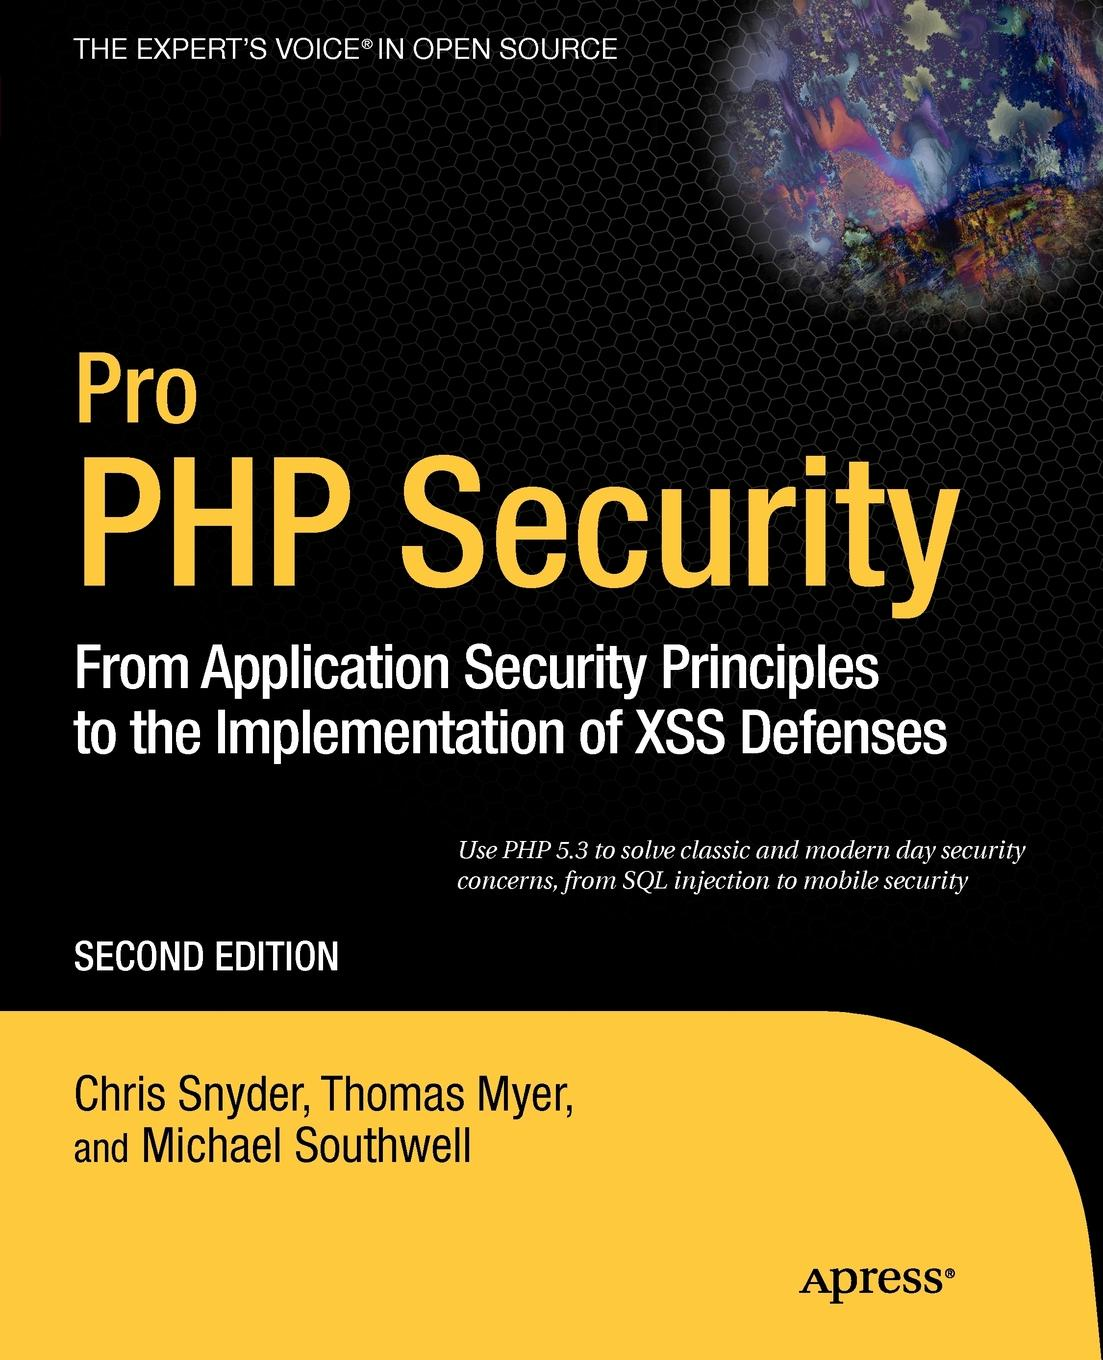 Chris Snyder, Thomas Myer, Michael Southwell Pro PHP Security. From Application Security Principles to the Implementation of XSS Defenses